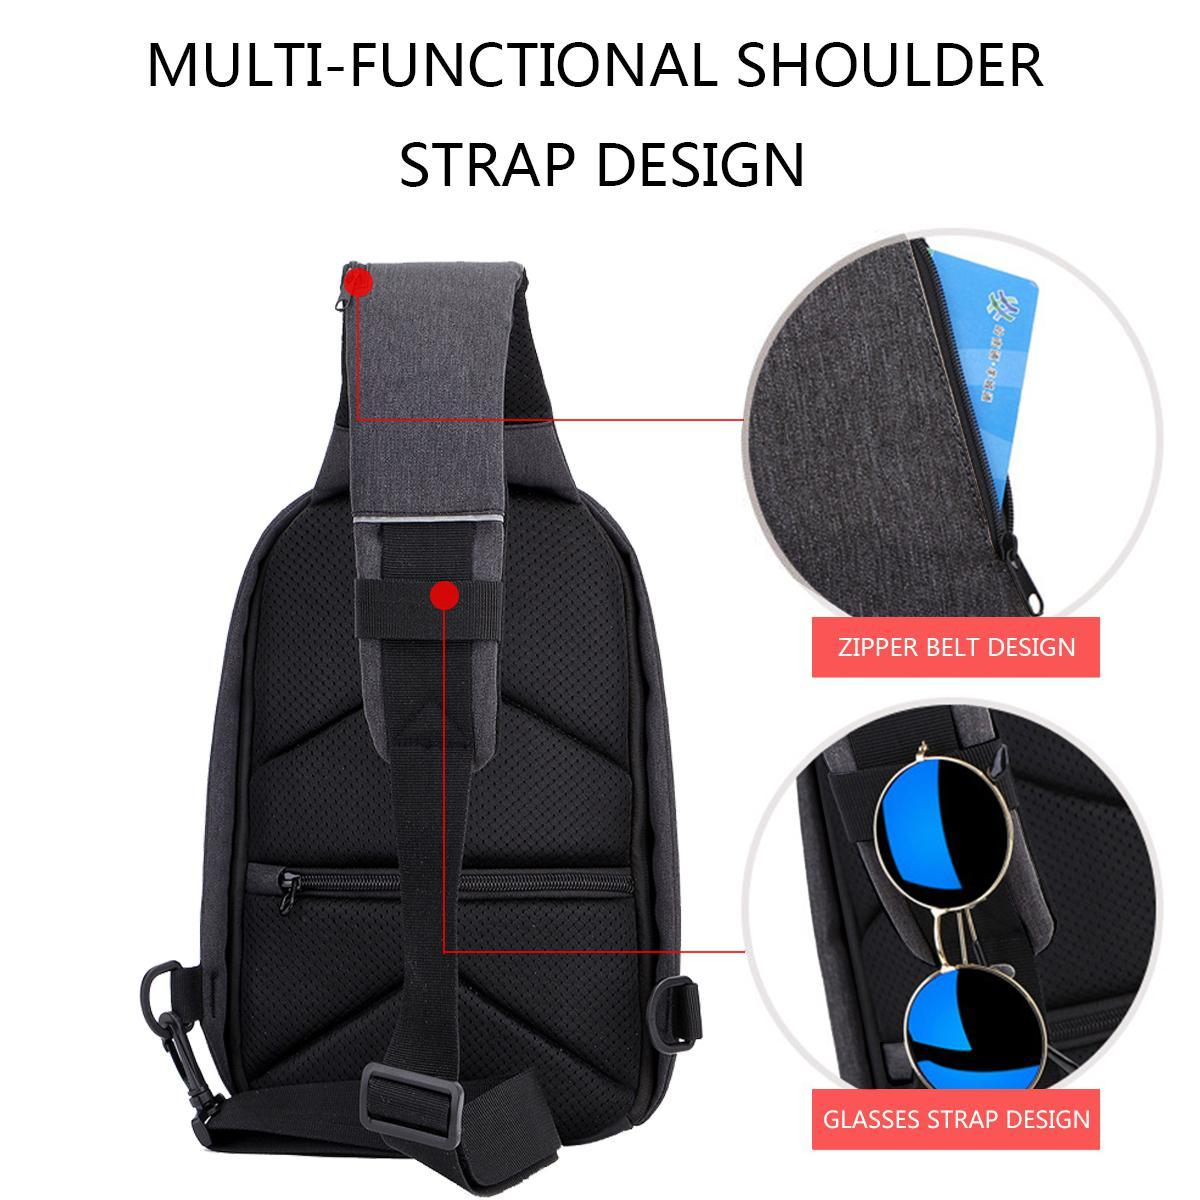 303a5898bda3 Teekeer Sling Backpack For Men Women With USB Charging Port, Anti Theft  Travel Sholder Bag Crossbody Chest Bags, Sling Backp Pack Purse For Hiking  ...